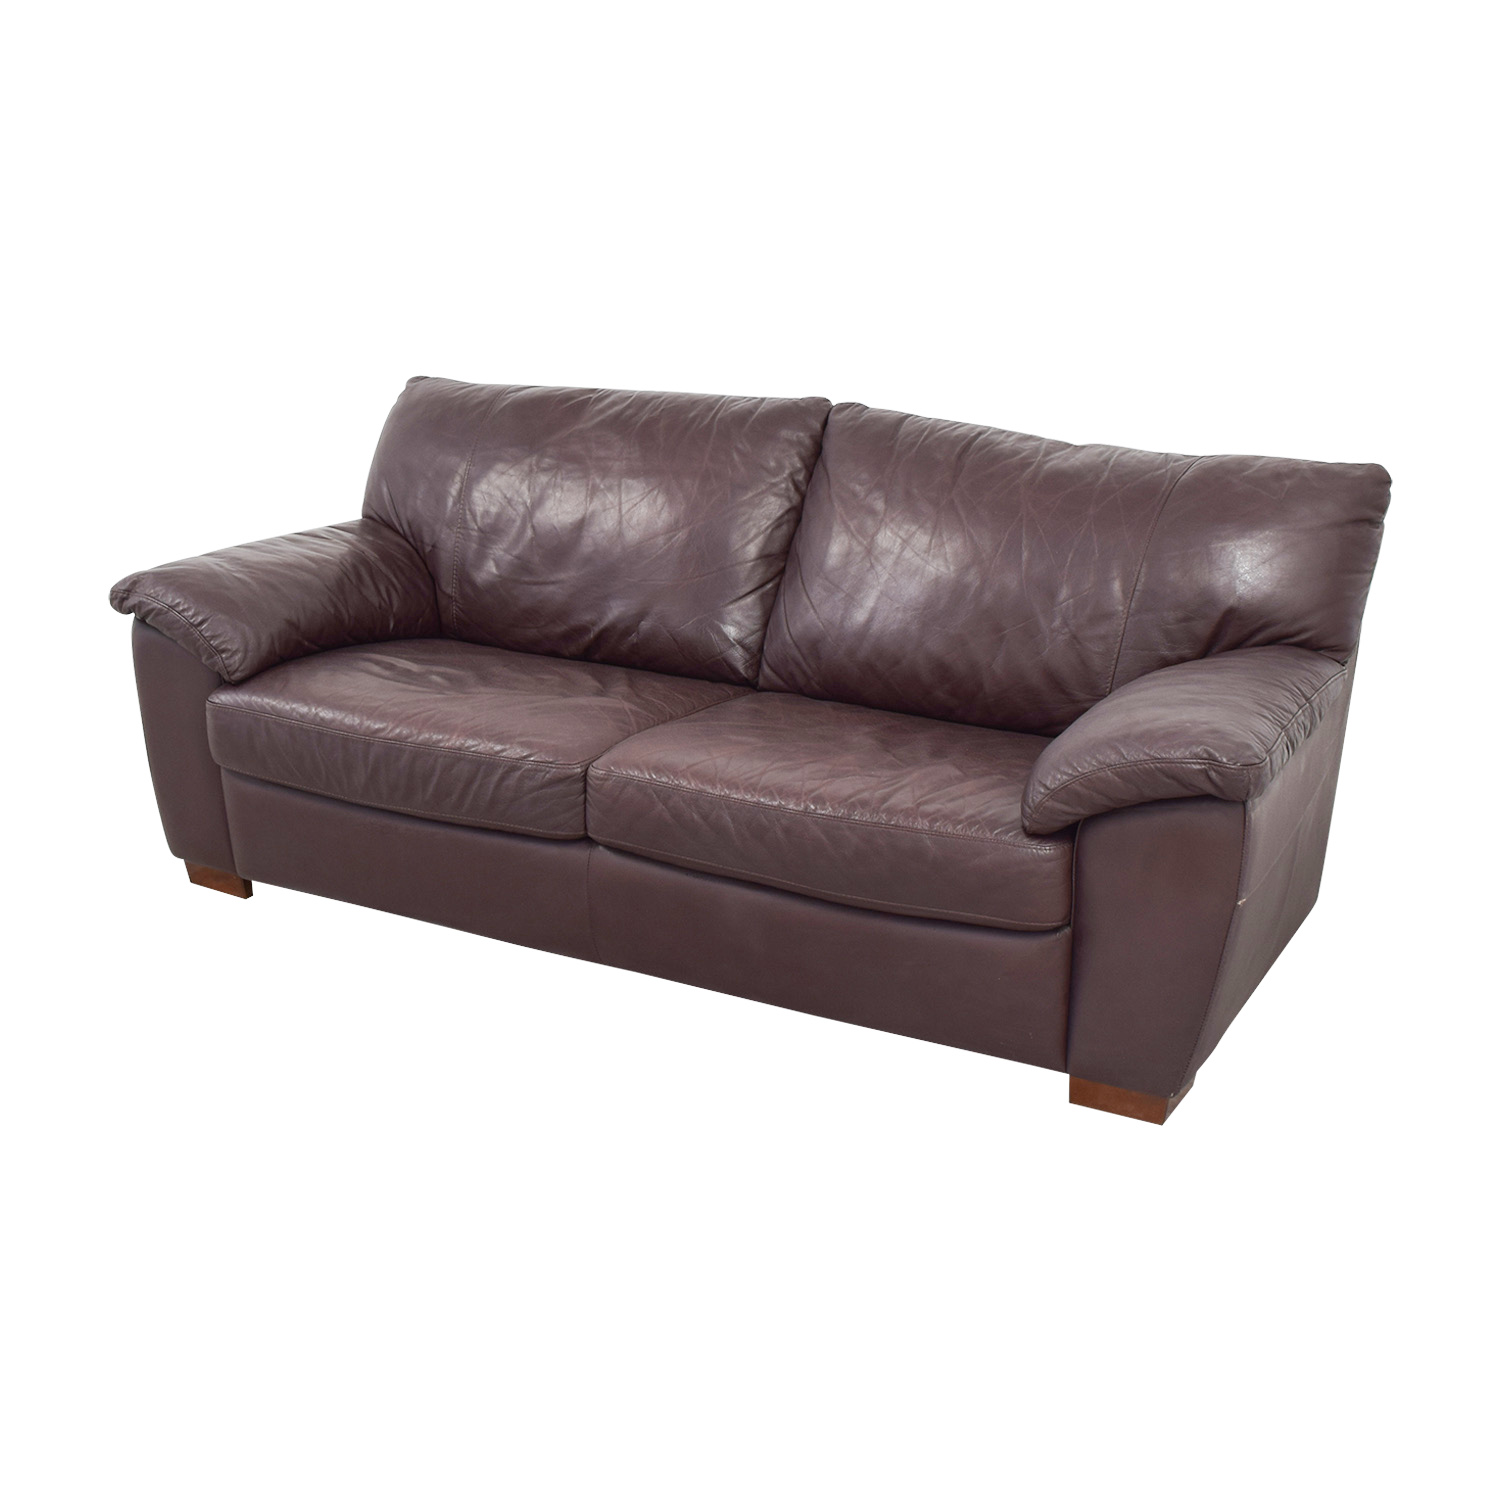 leather sofas ikea pet friendly uk 87 off vreta brown two cushion sofa